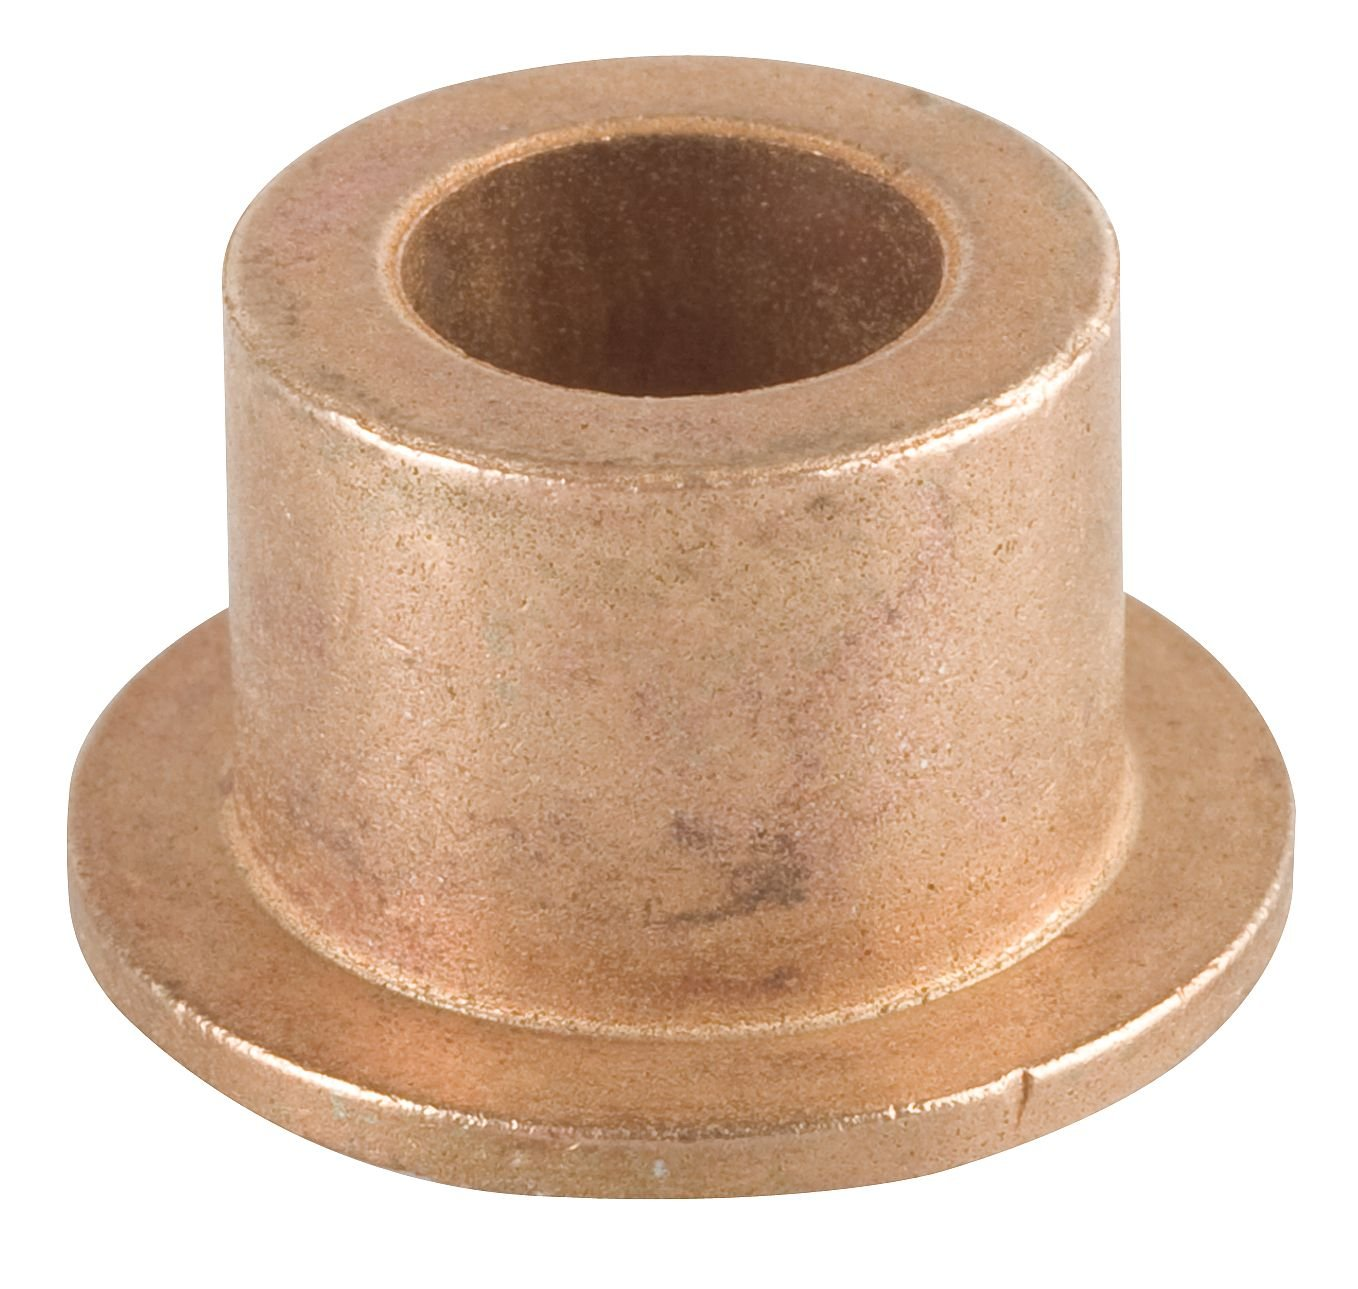 Bunting Bearings DPEF050706 Dri C Japan's largest assortment Powde Today's only Plane Flange